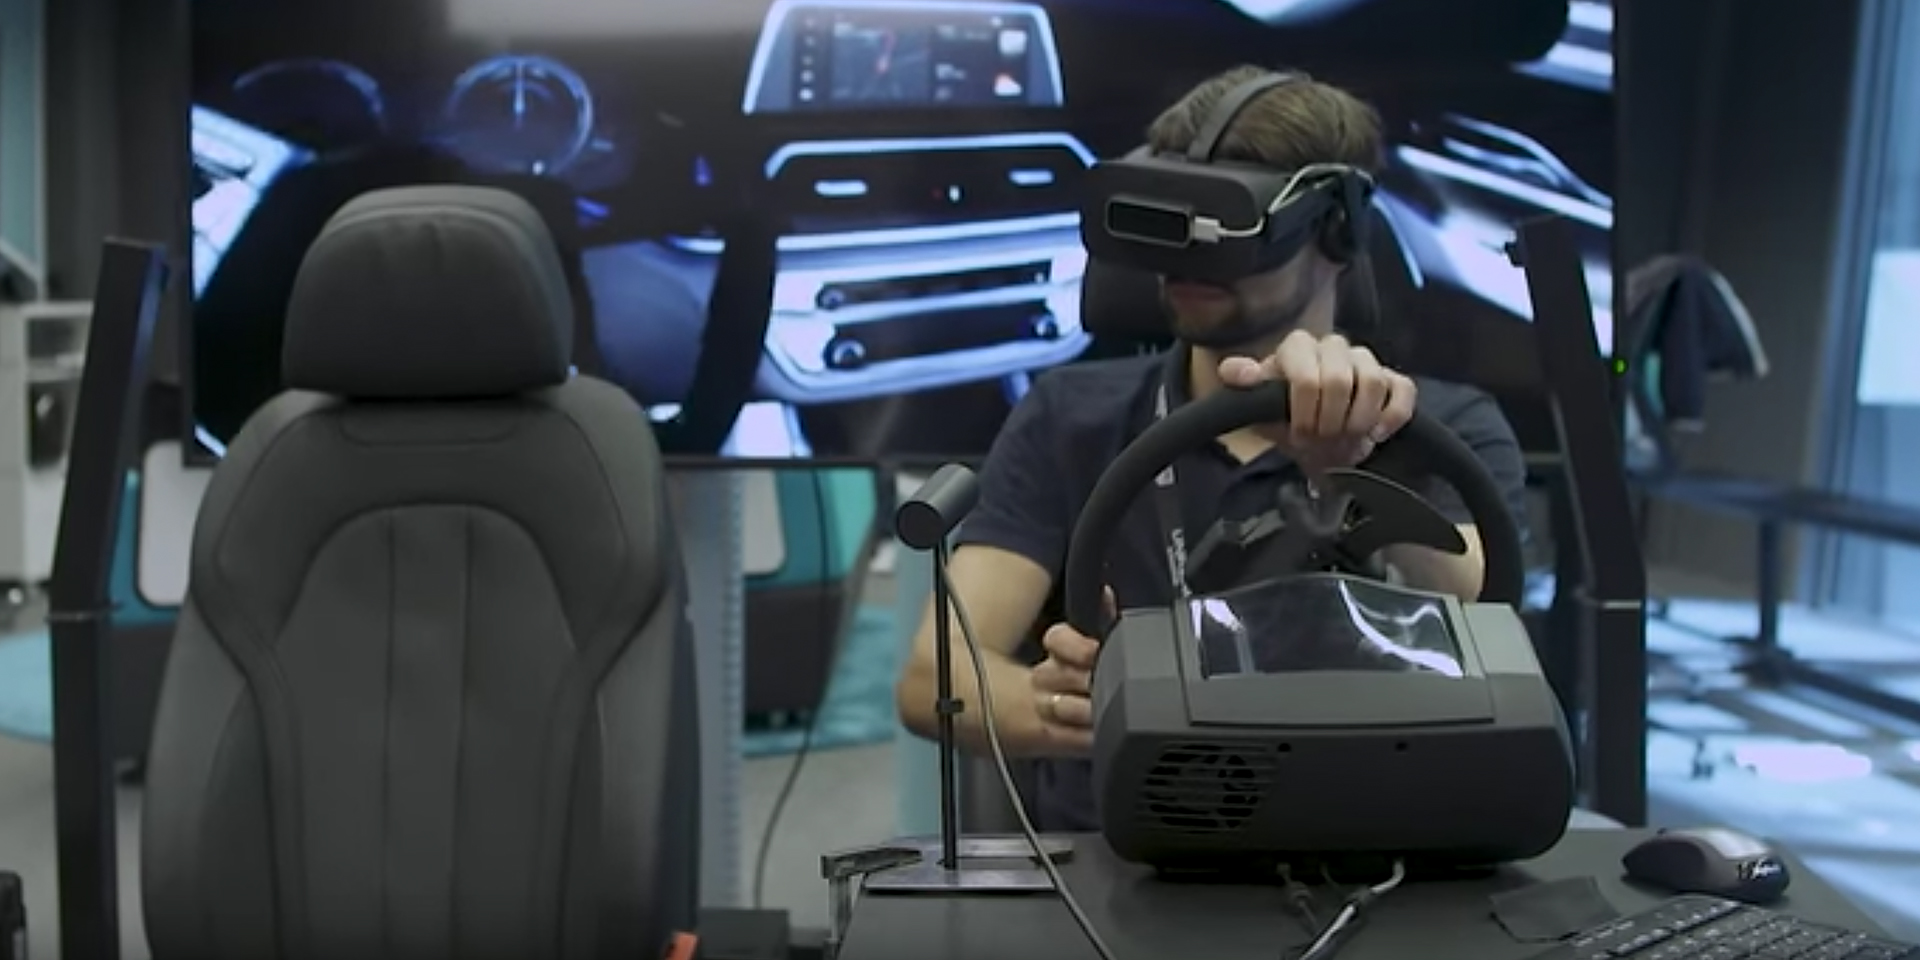 Unreal+Engine/spotlights/bmw-brings-mixed-reality-to-automotive-design-with-unreal-engine/blog_feature_img1-1920x960-b0a9c1bea3d8f7fc8402fe77696a6bc410003337.jpg (1920×960)